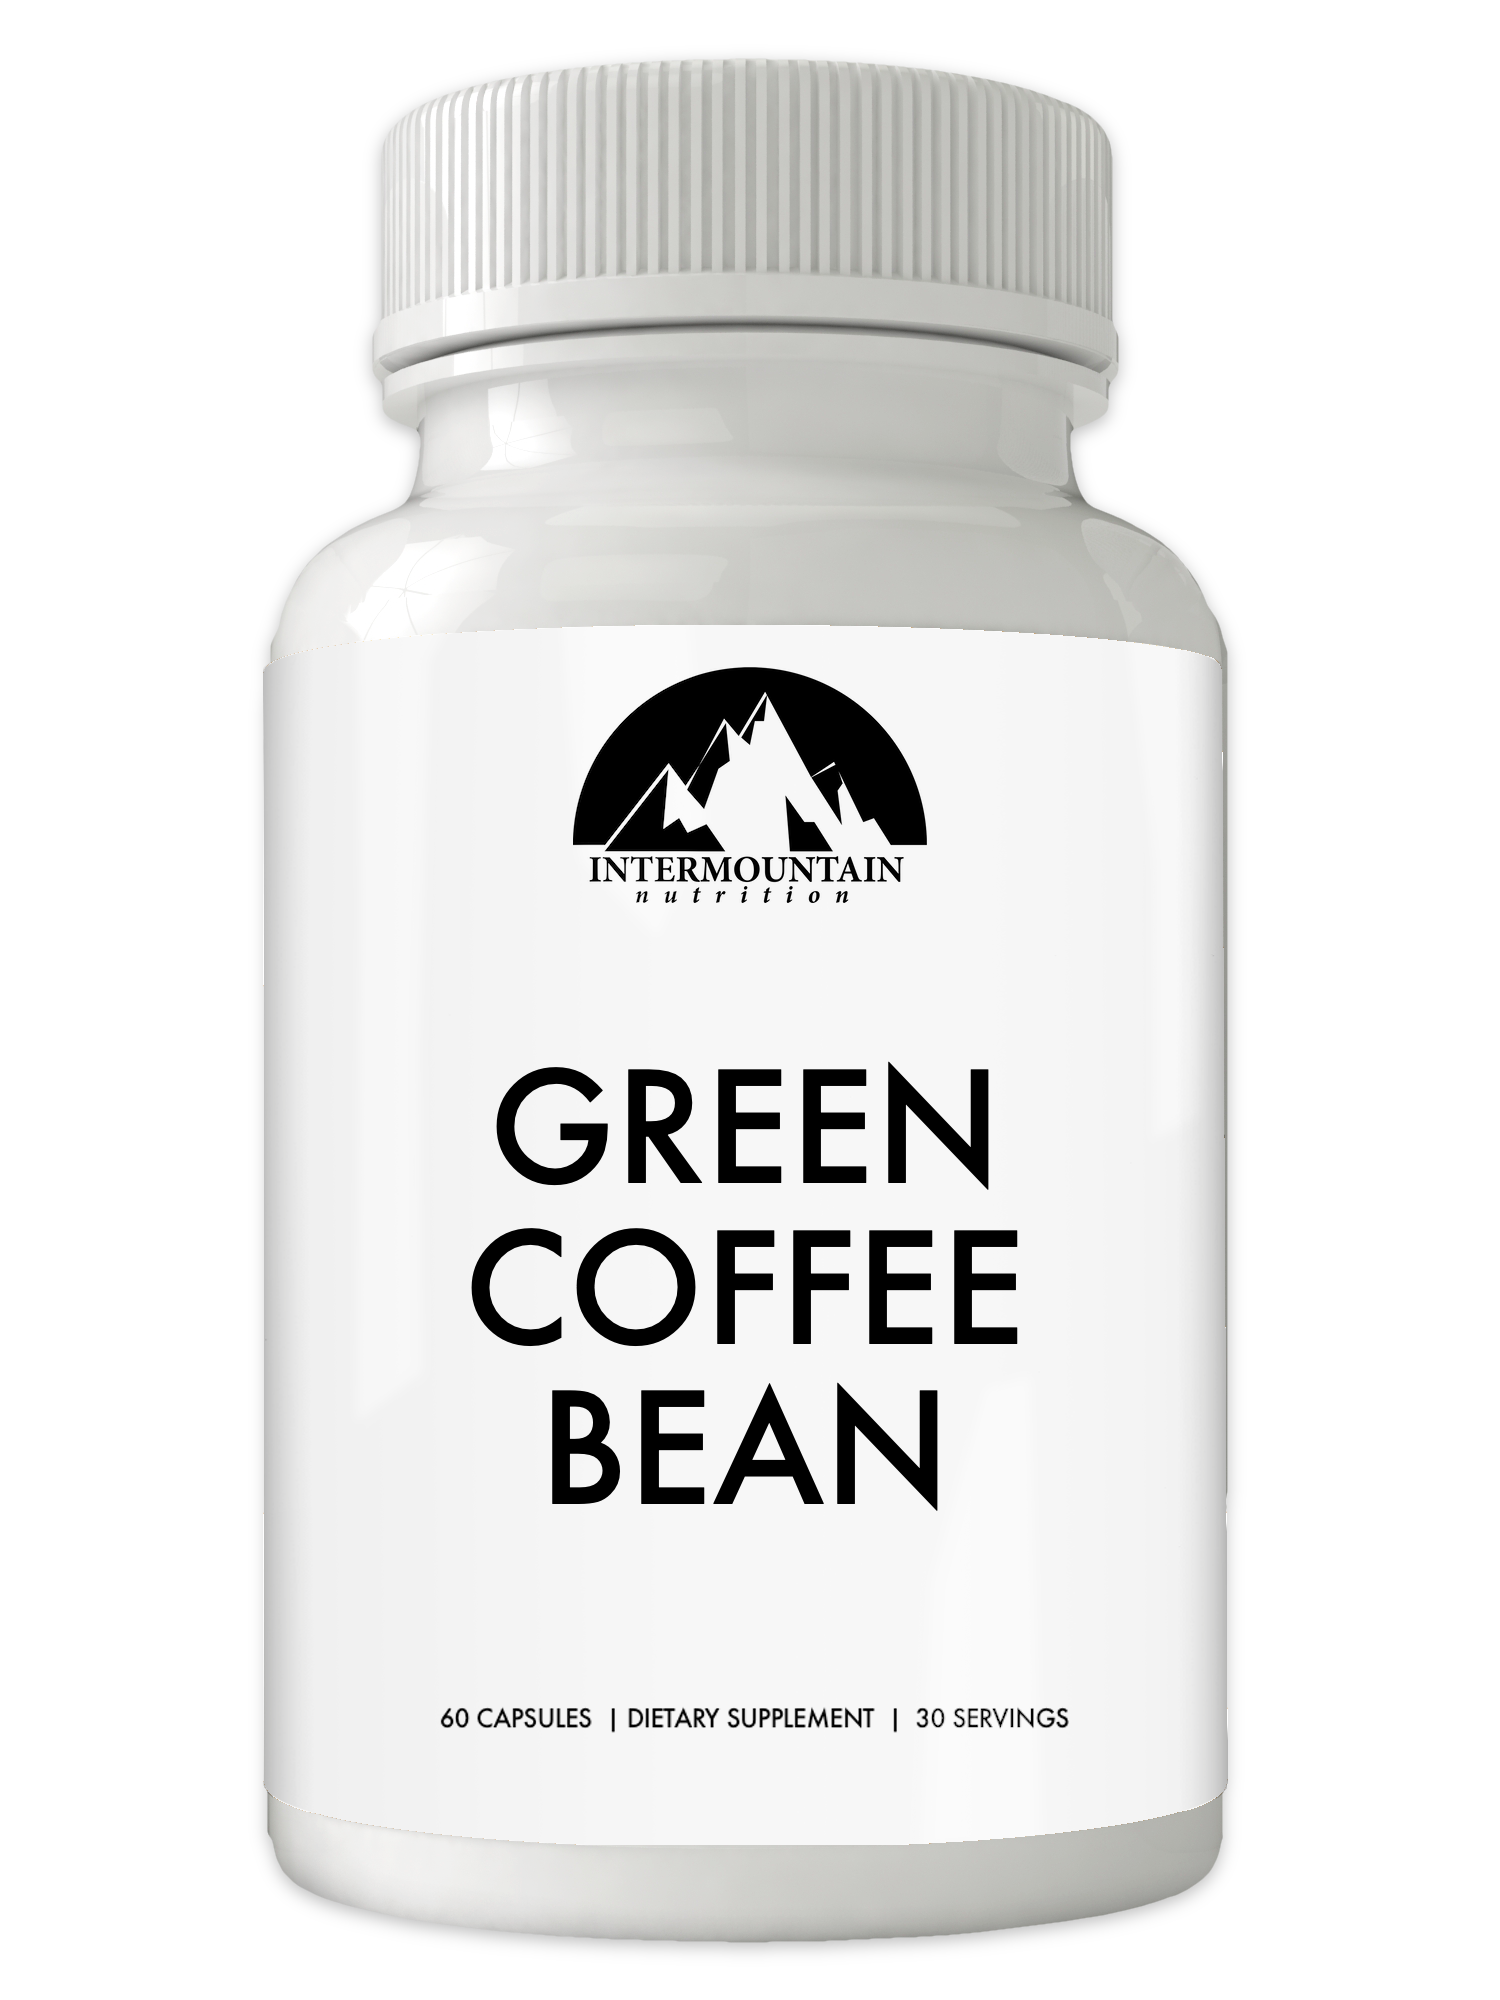 IMN GREEN COFFEE BEAN.png